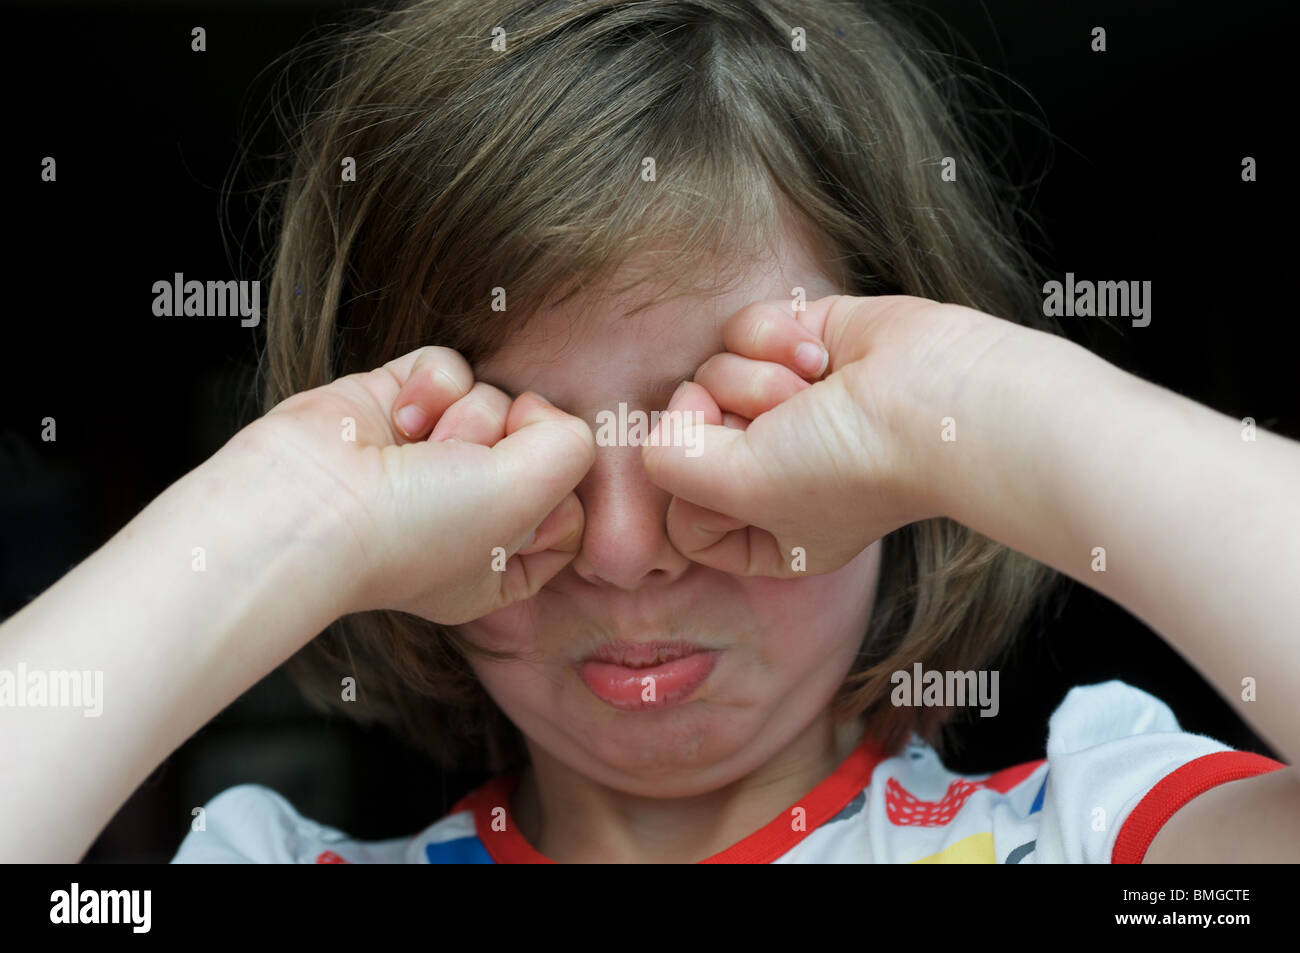 Young girl rubbing her eyes after sobbing - Stock Image